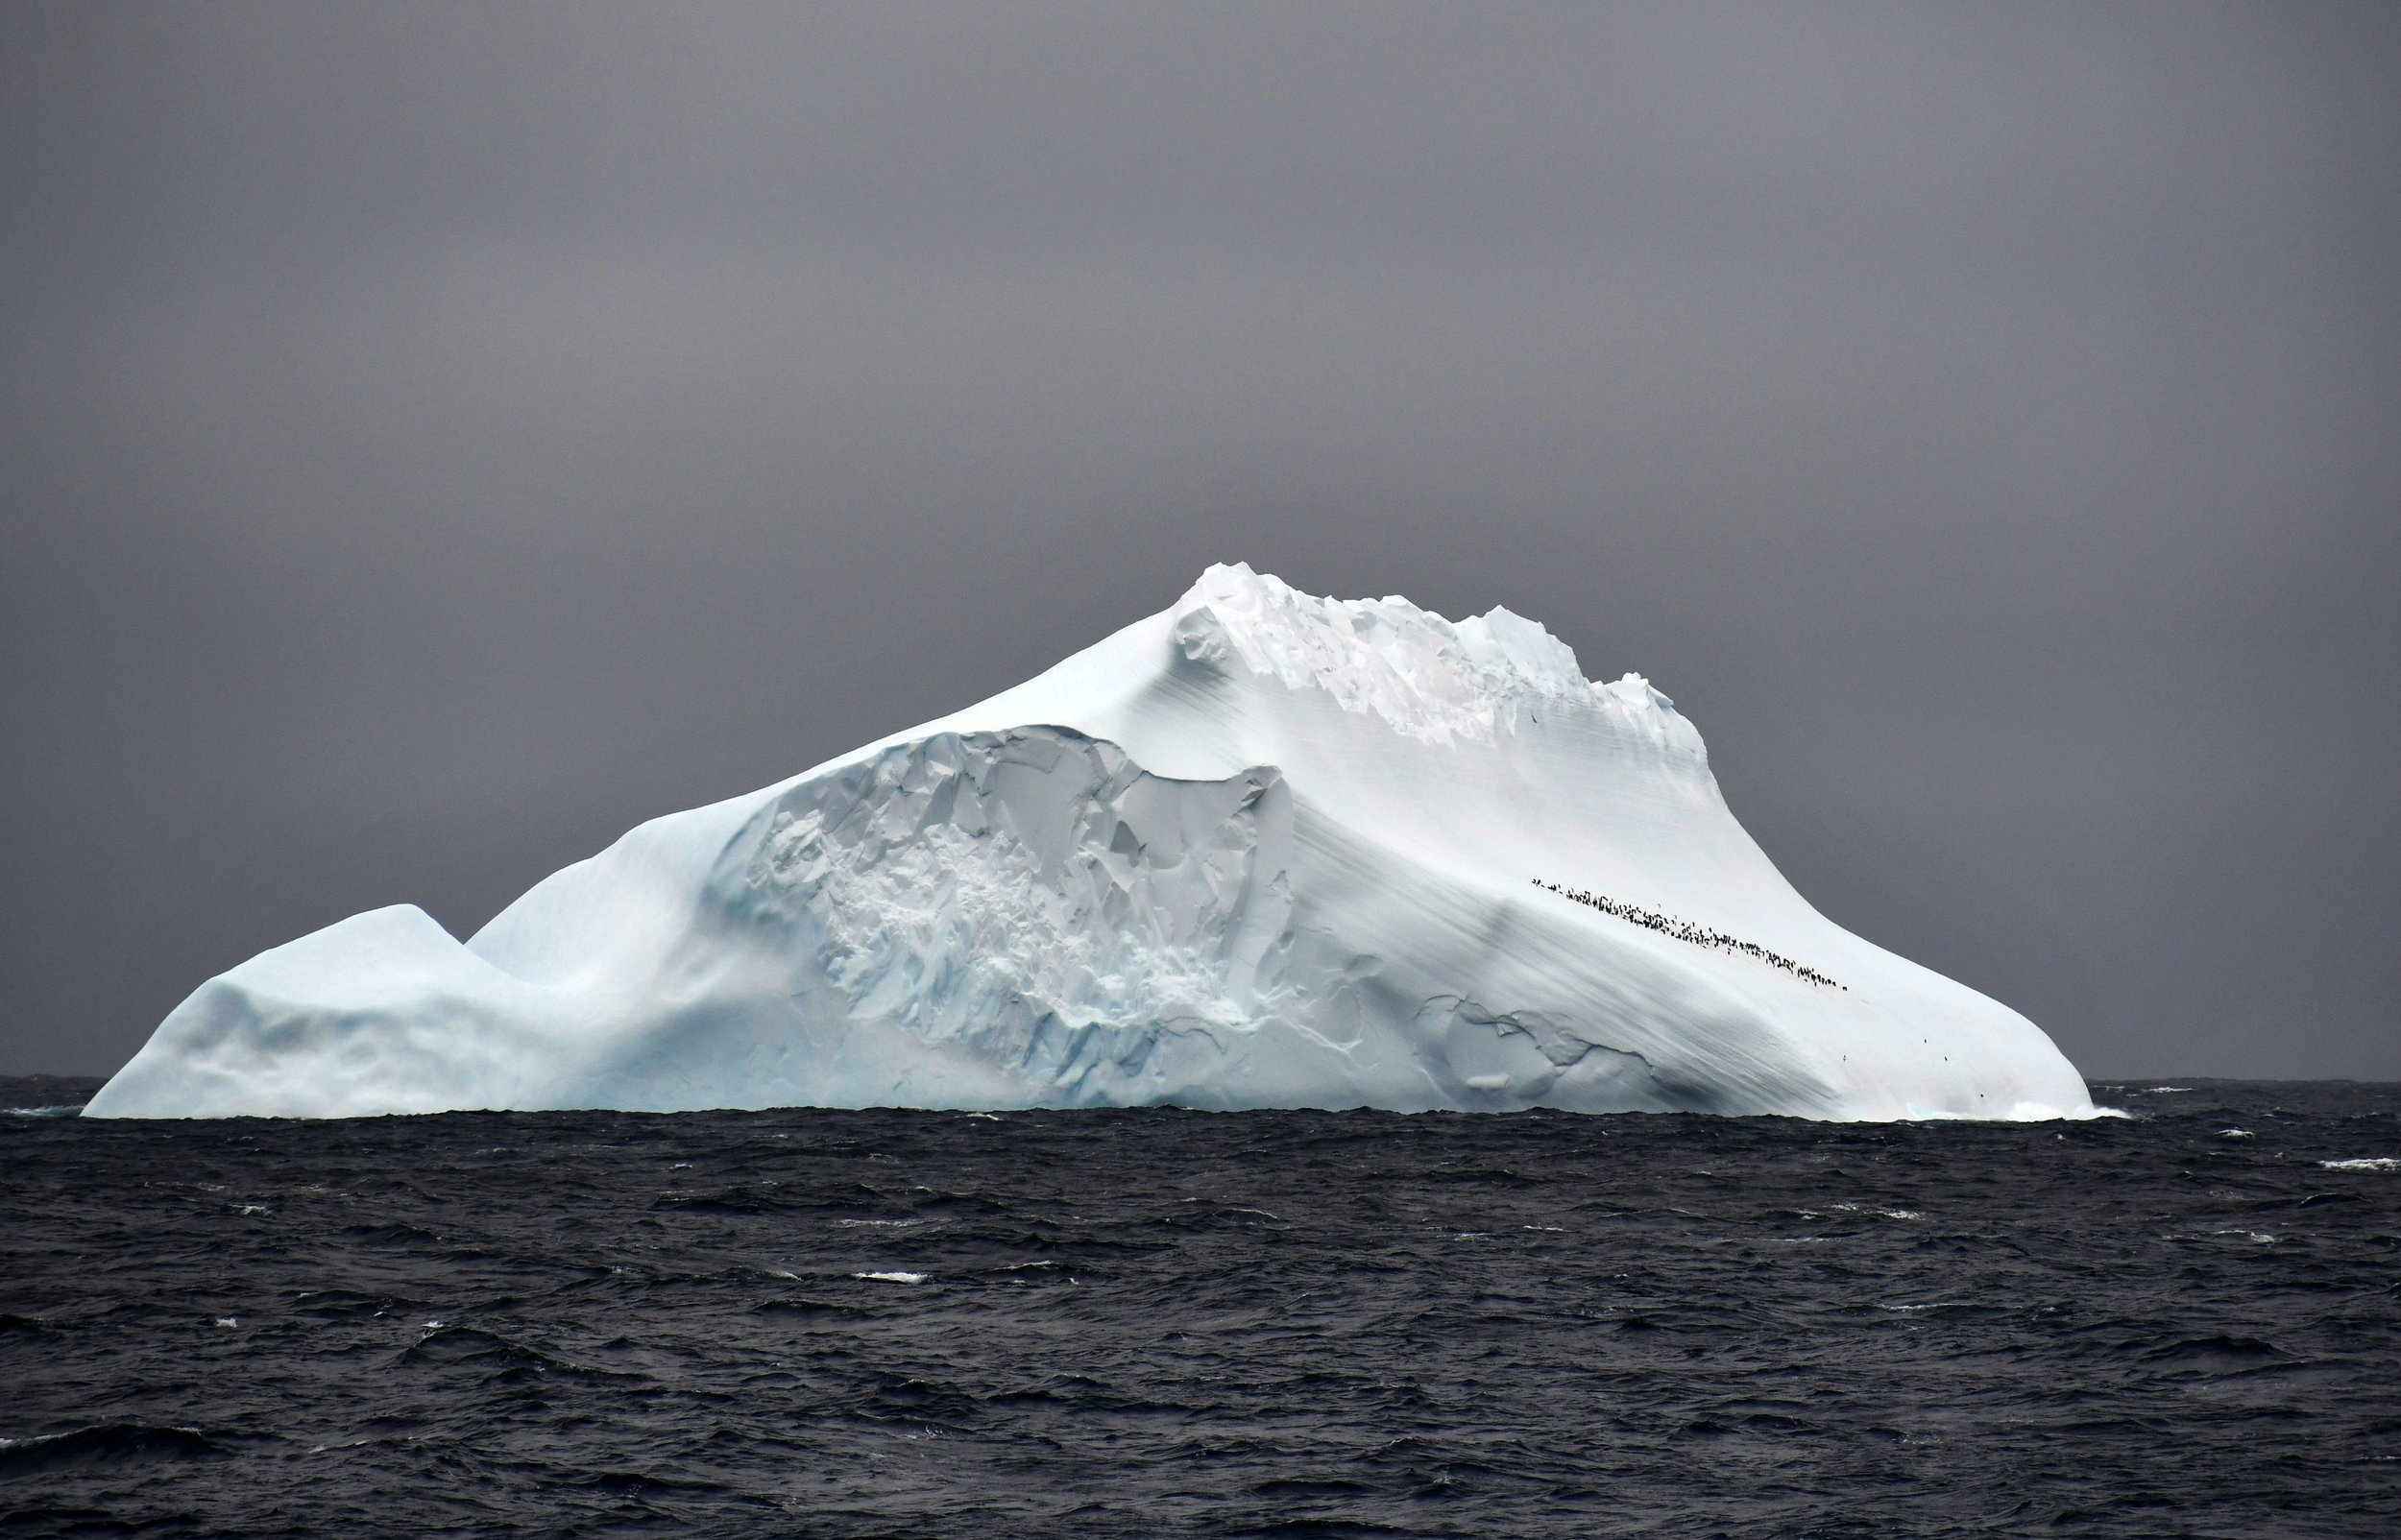 Iceberg with penguins, Copyright © Marlo Garnsworthy 2019